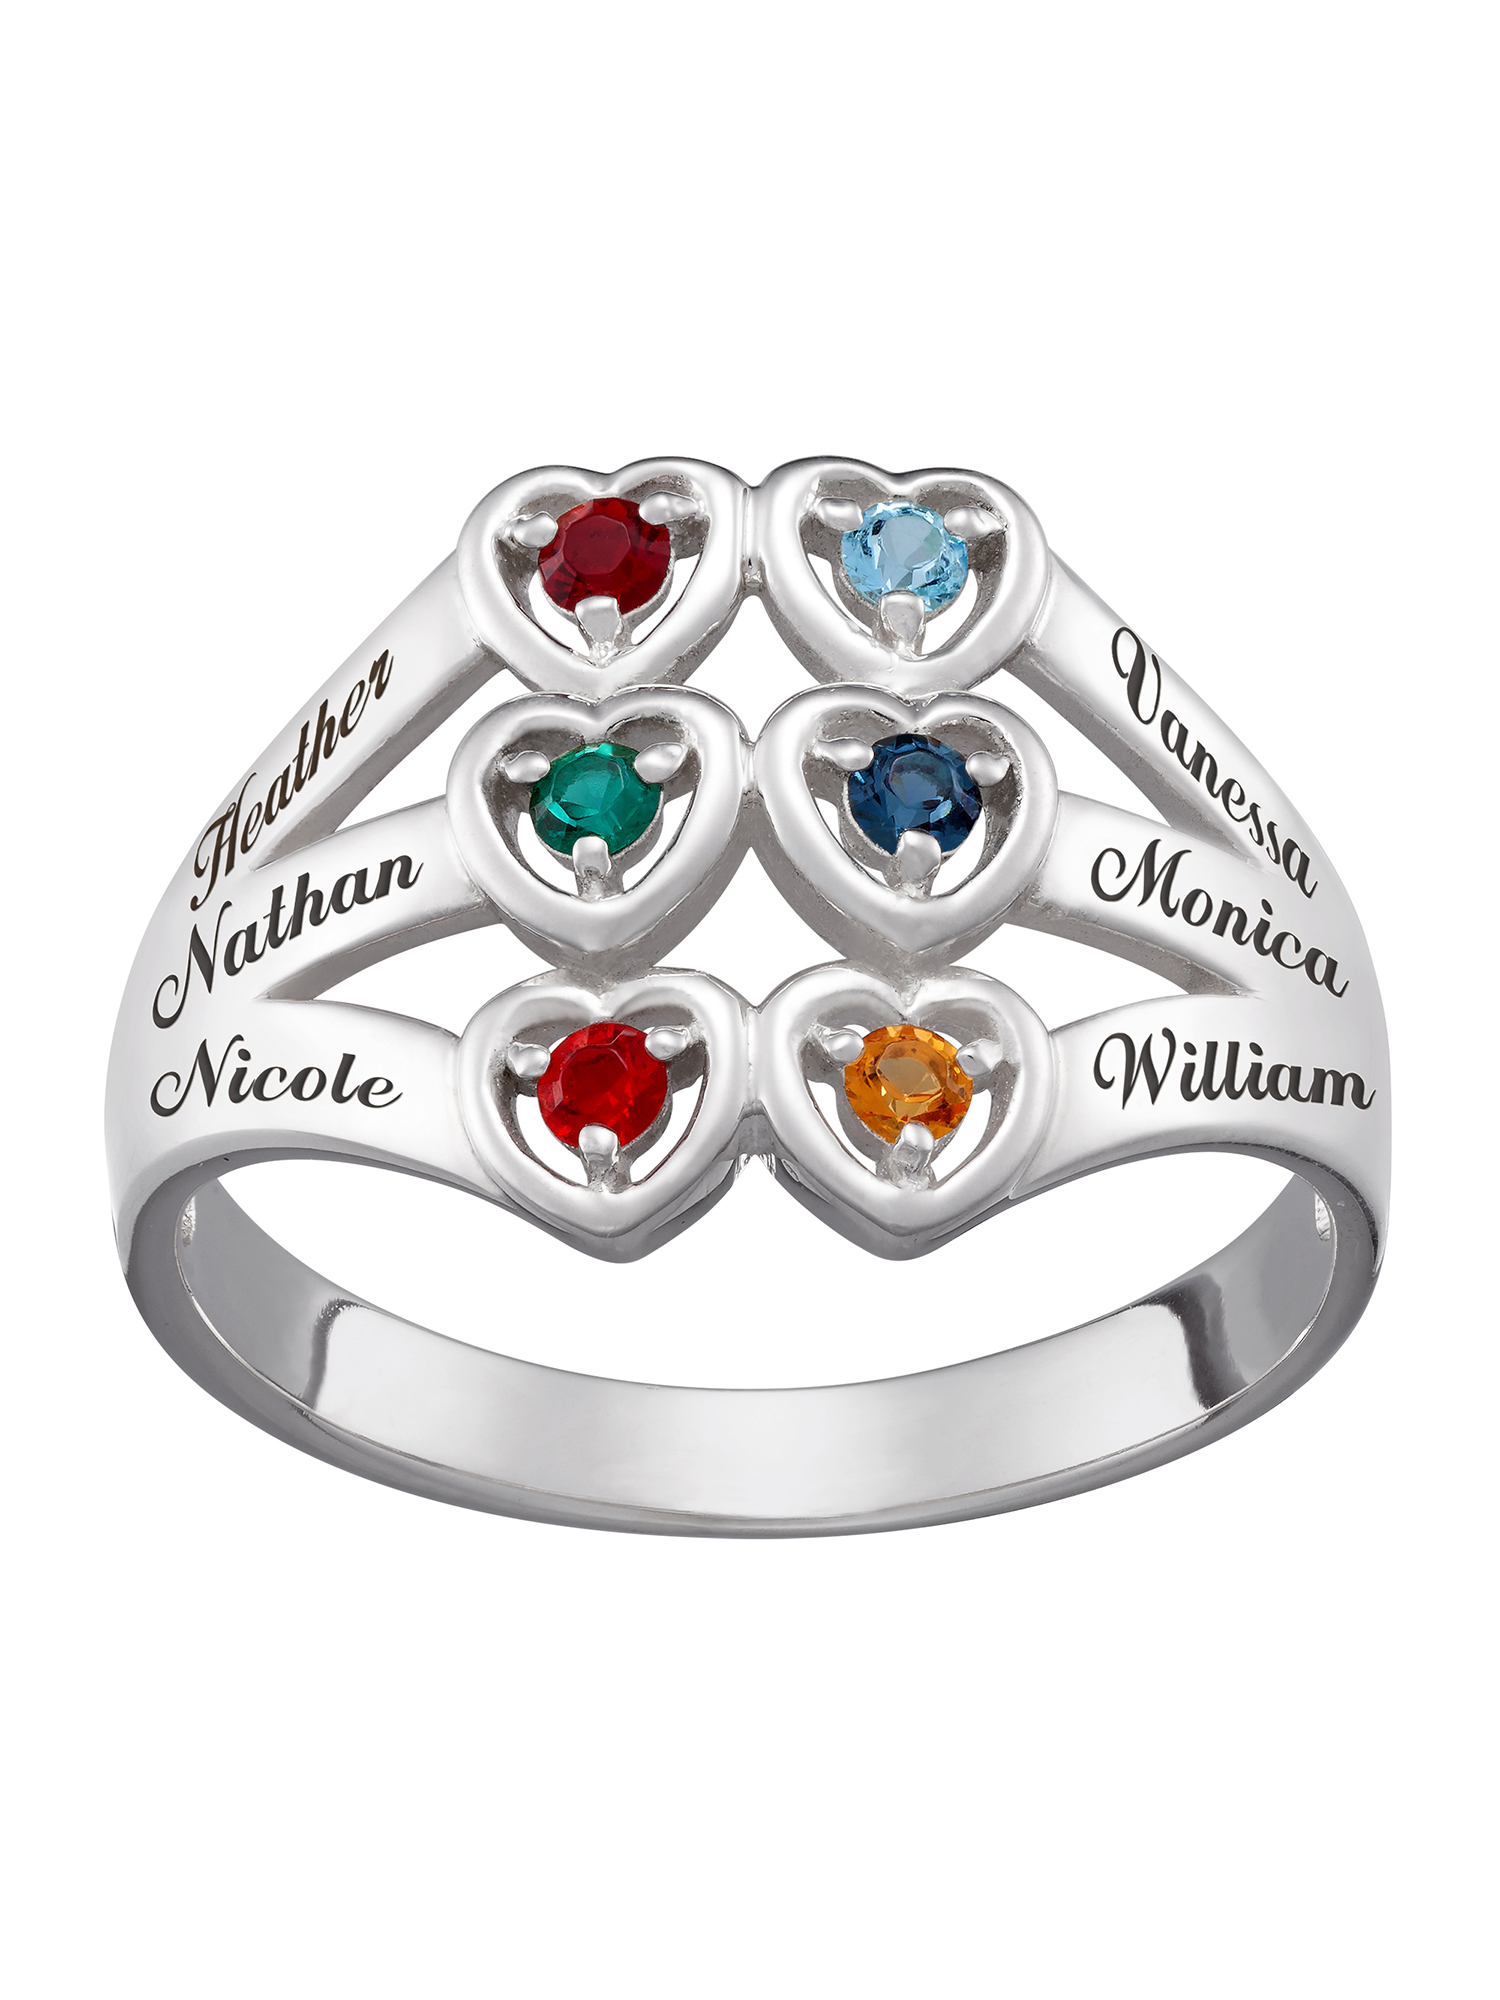 personalized ip plus gold rings available silver class com white and oval men keepsake ring walmart in valadium softball s yellow metals